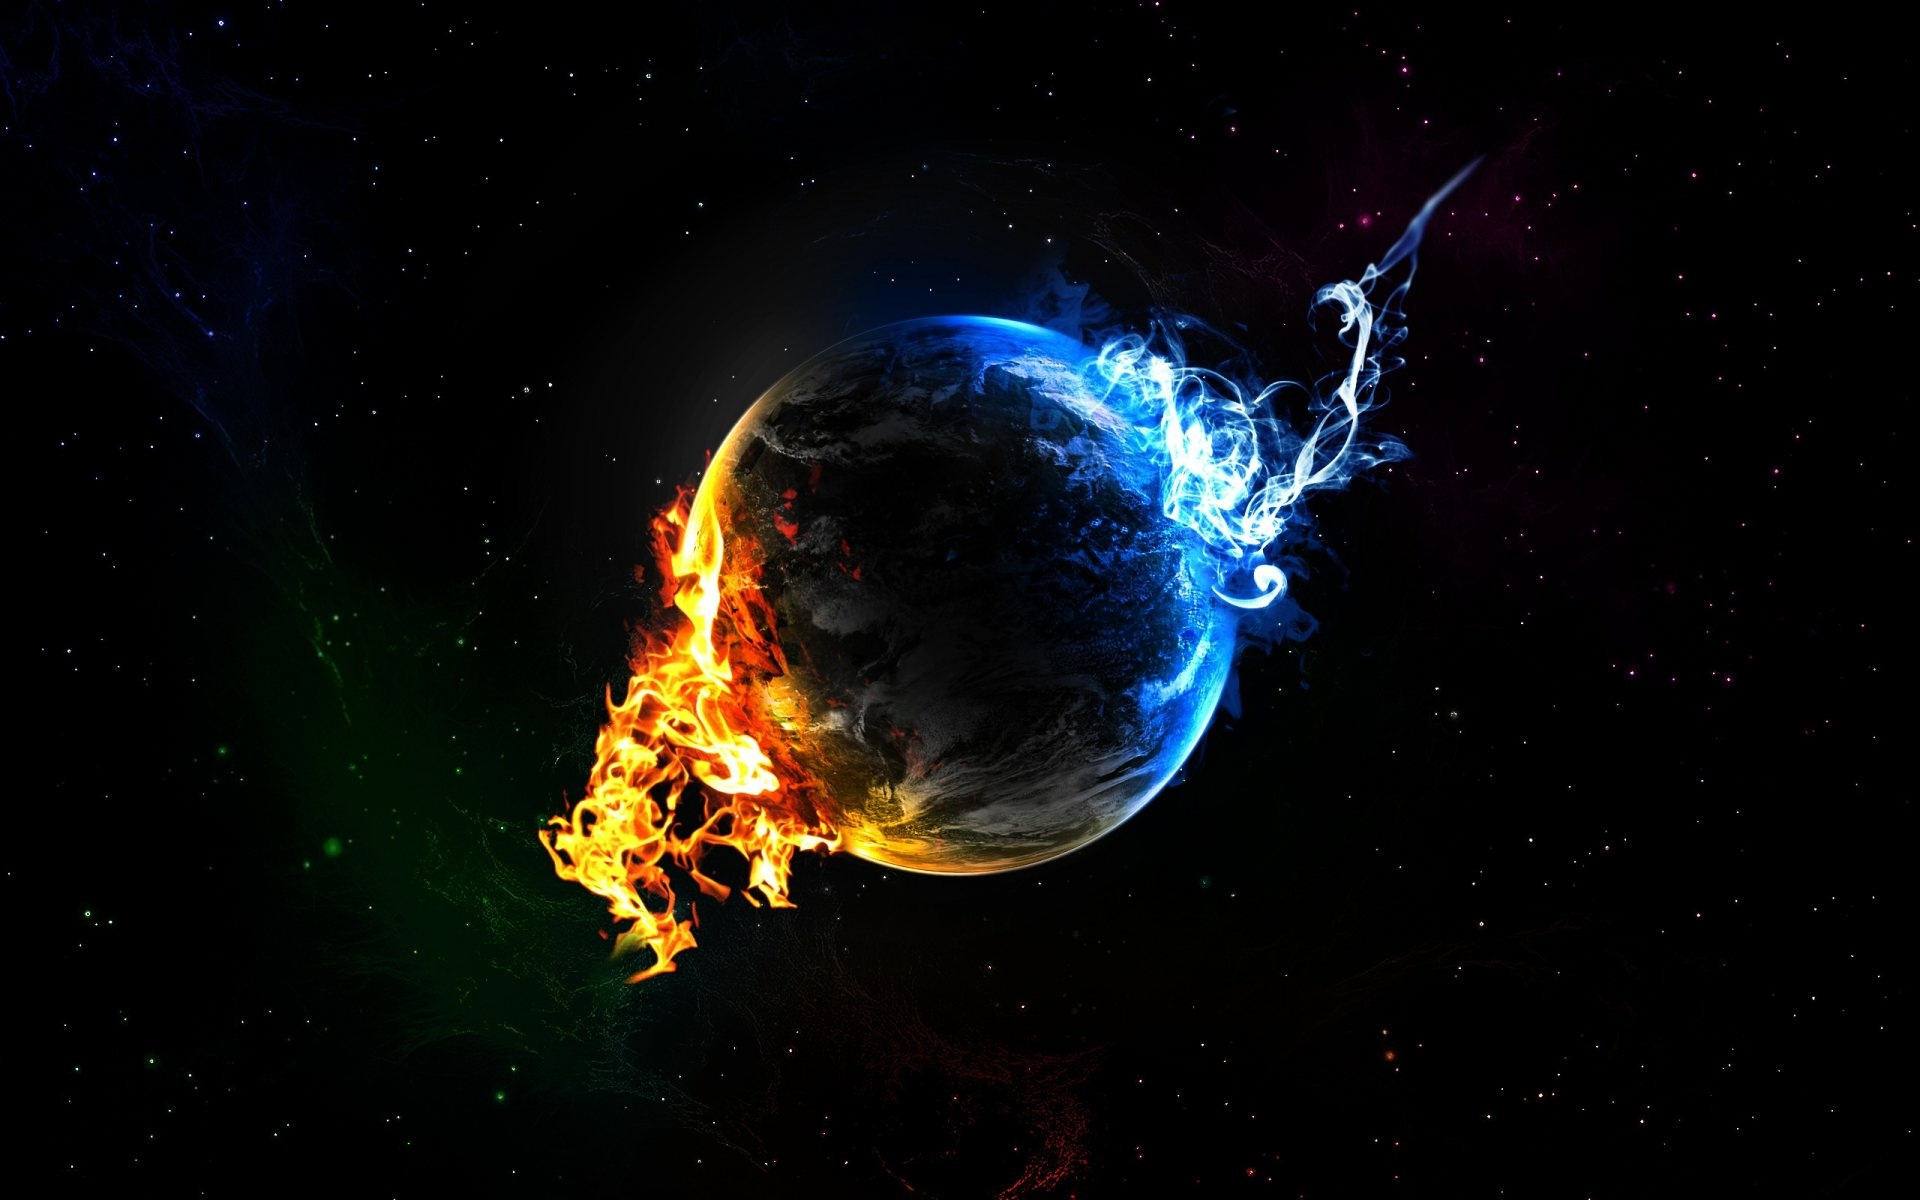 Drawn planets fire and ice Beginnings Ice Fire Fire ice